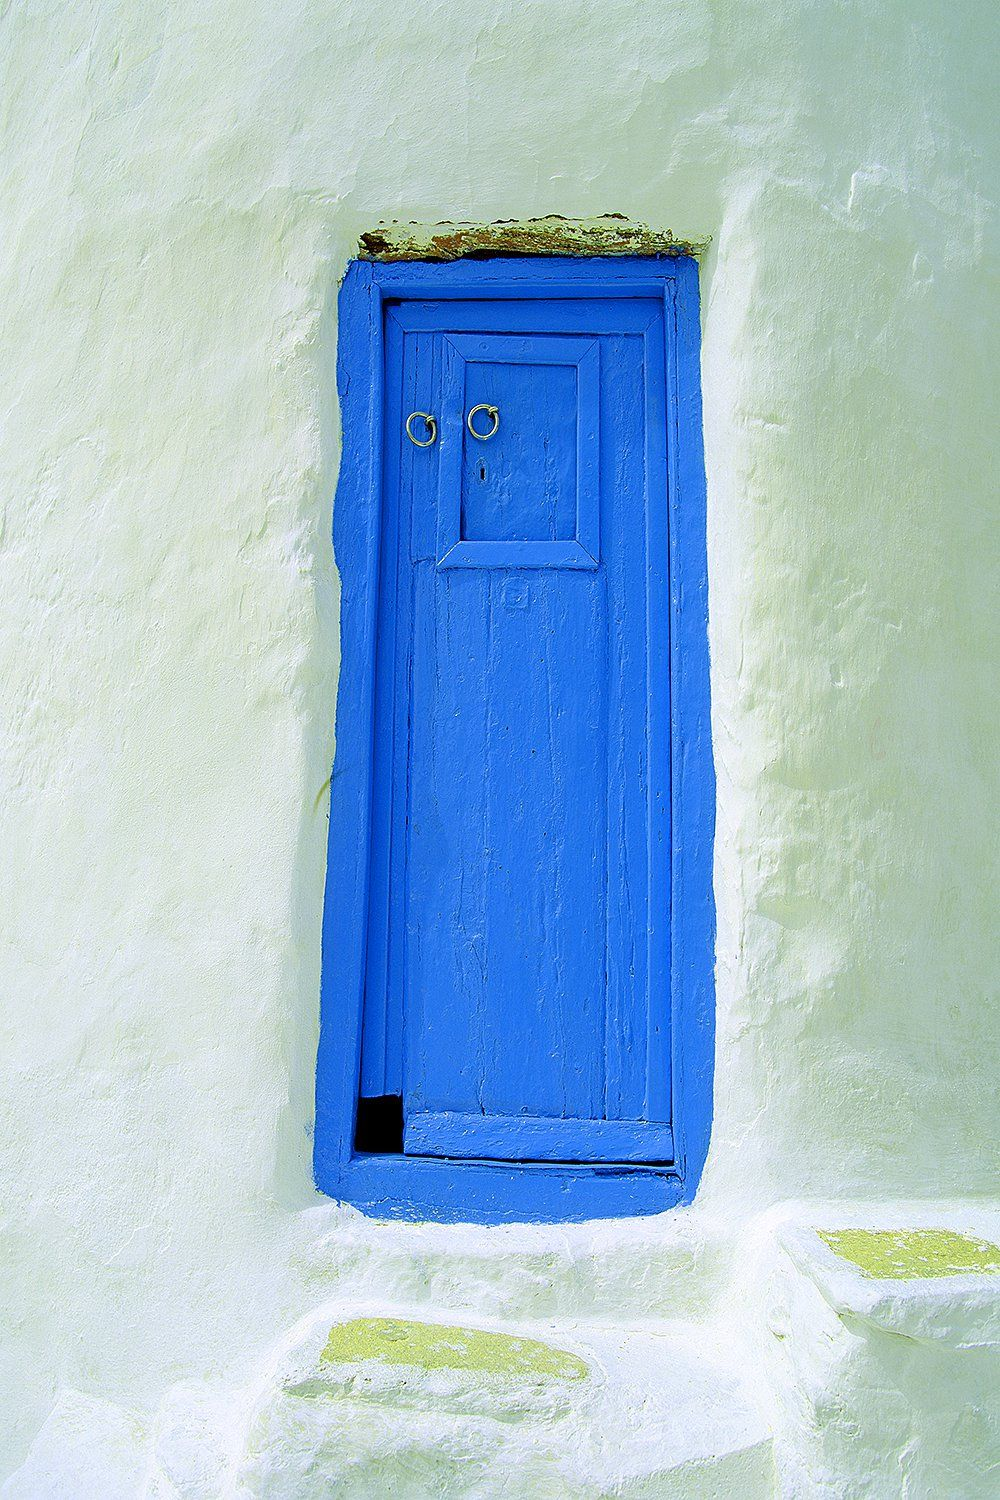 Greece - Blue door on windmill, Mykonos Island - Jim Zuckerman Photography